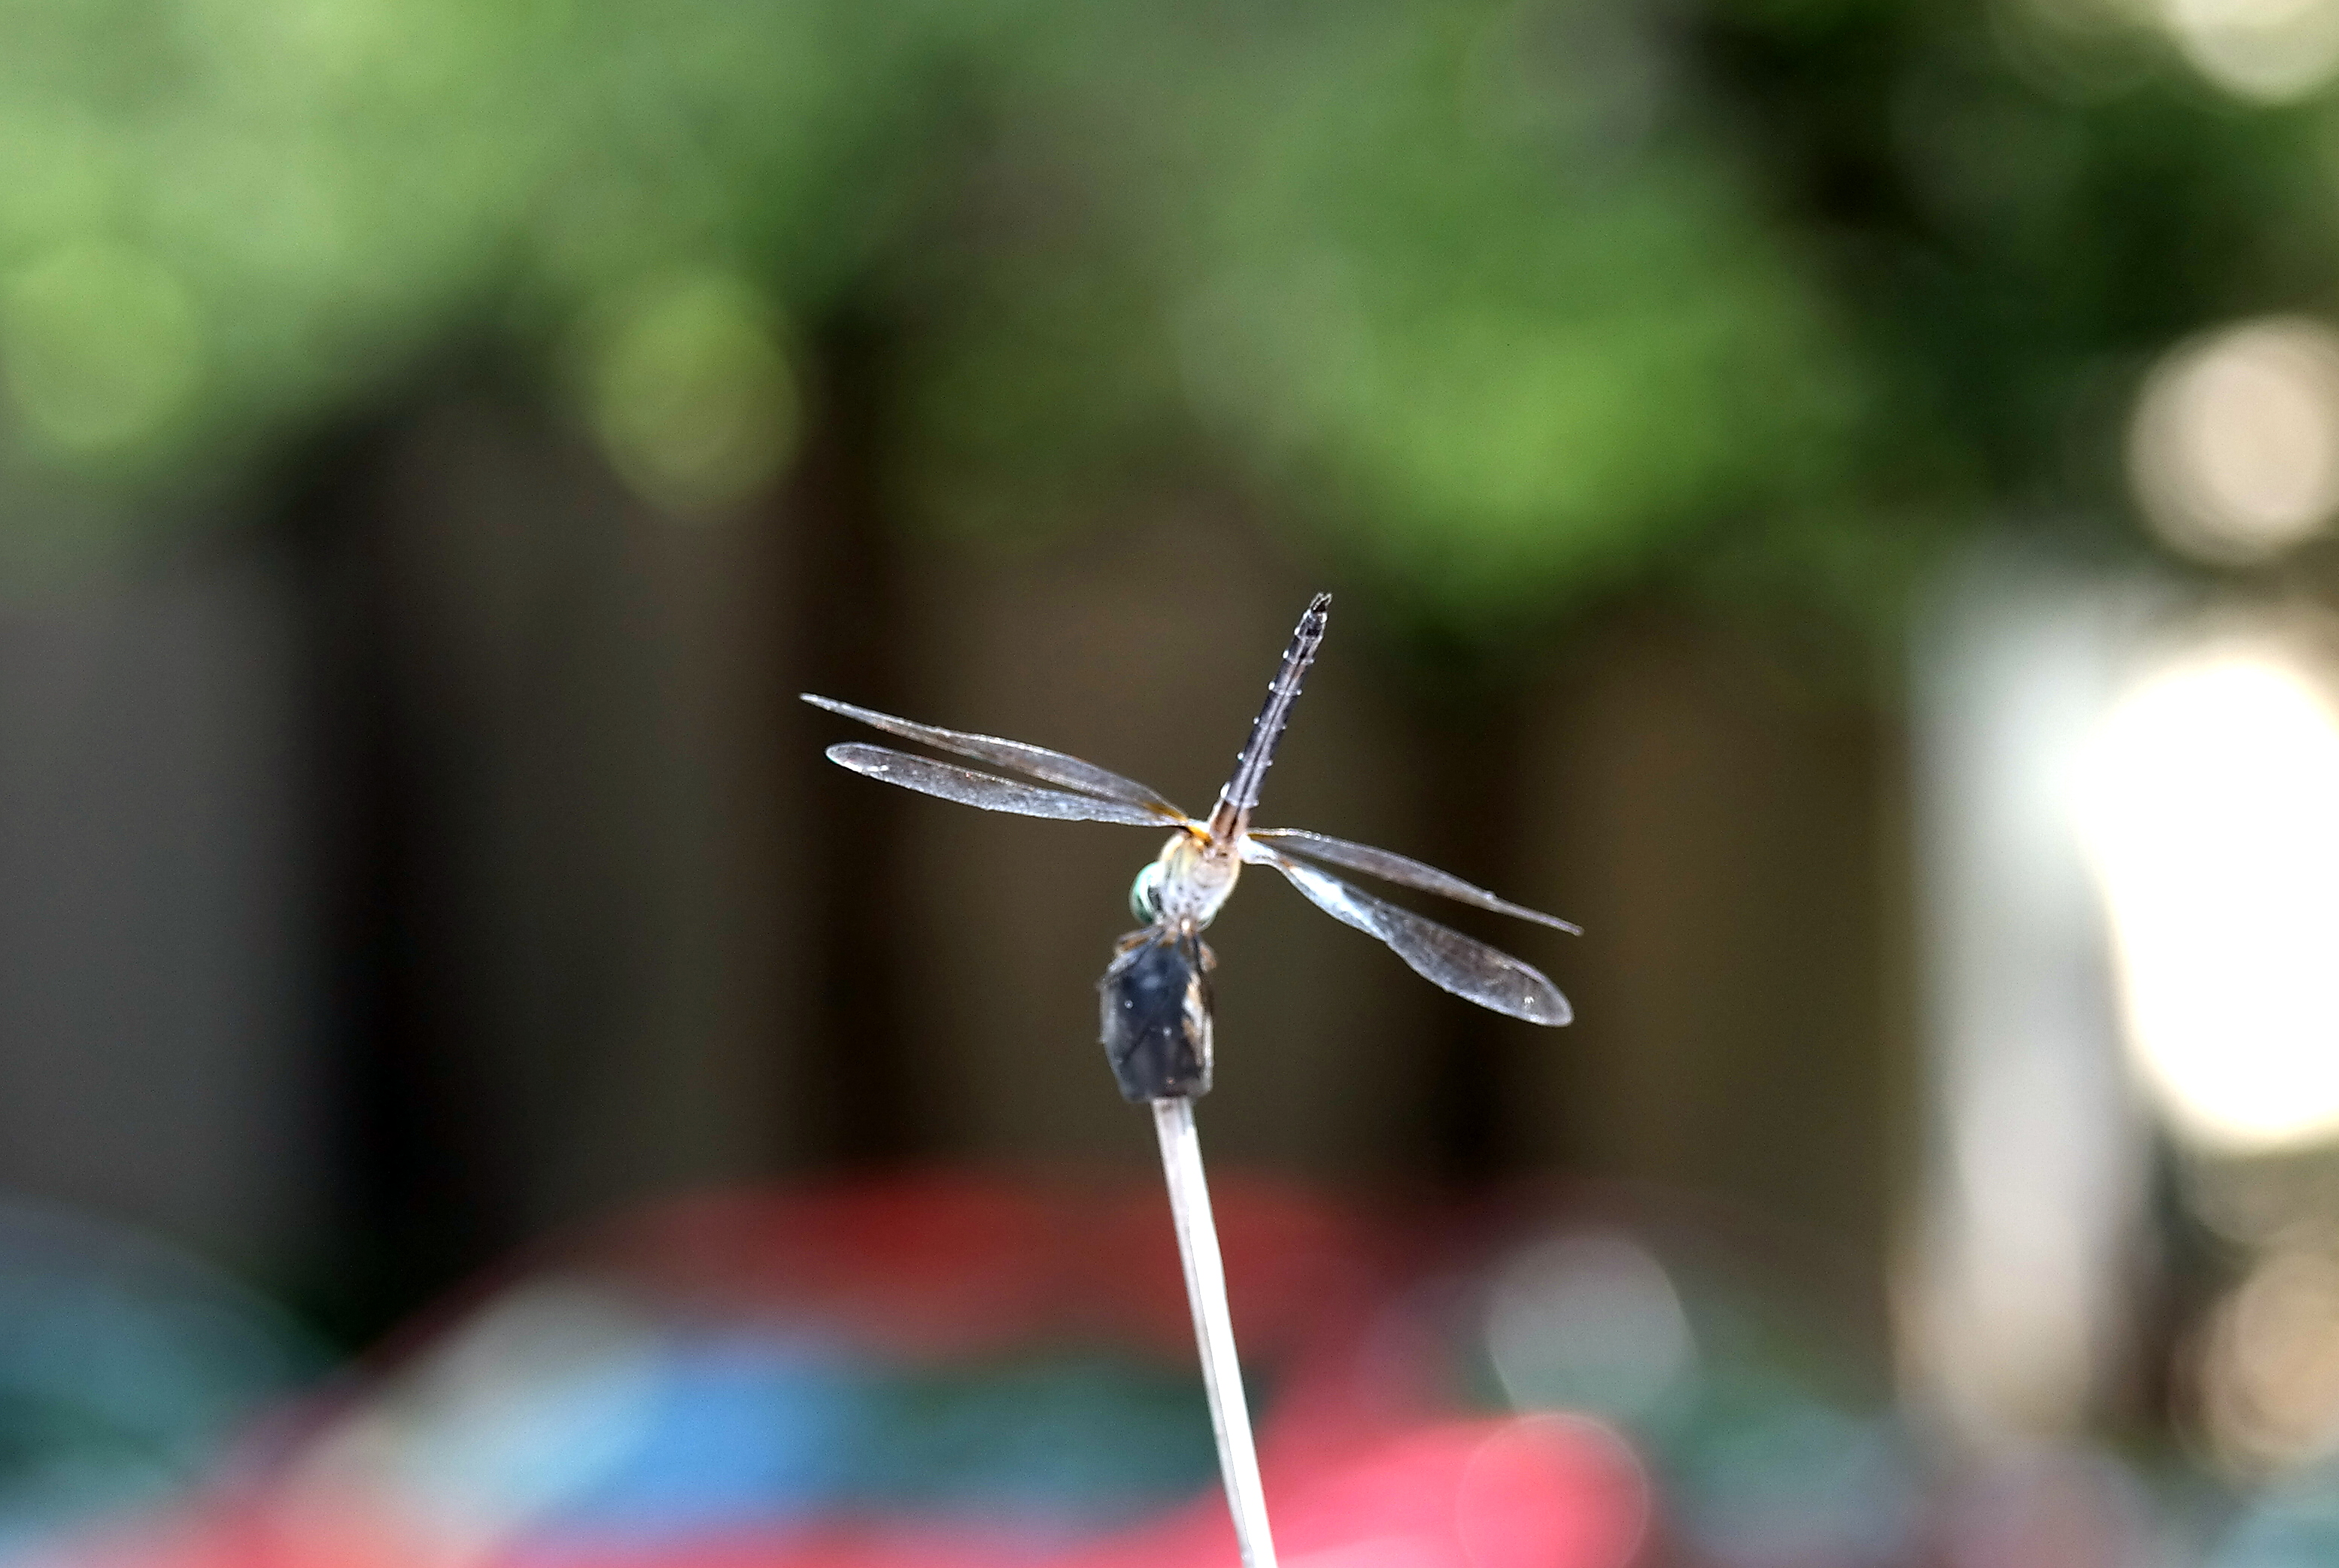 Dragonfly - macro photography.